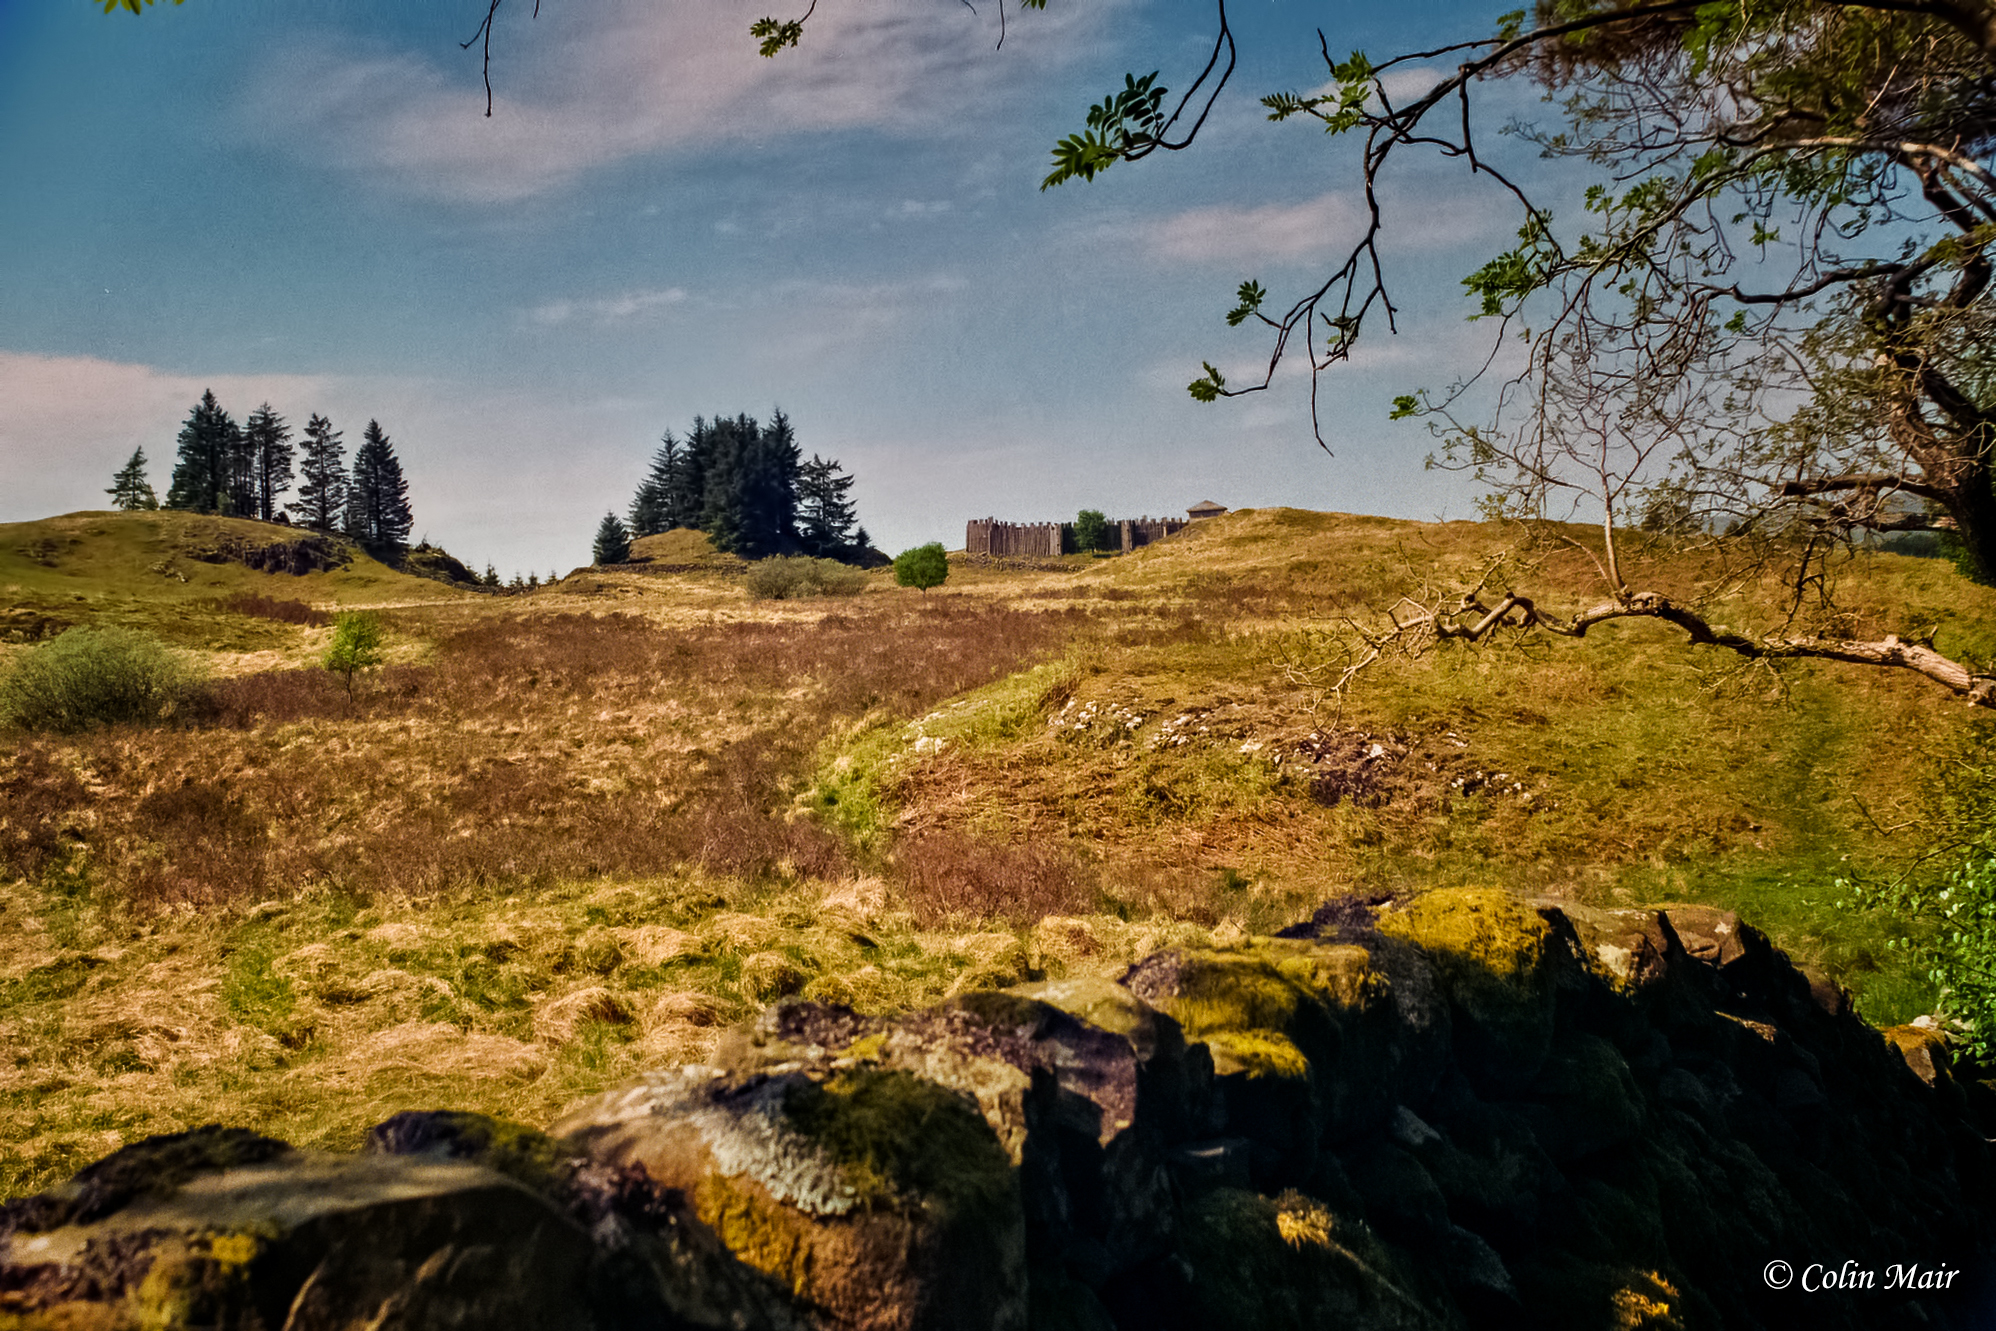 The Fort - 2018-05-25th, 17A_01138, Hanimex, 28mm, f11, 1-125th, Loch Doon, fort & hills